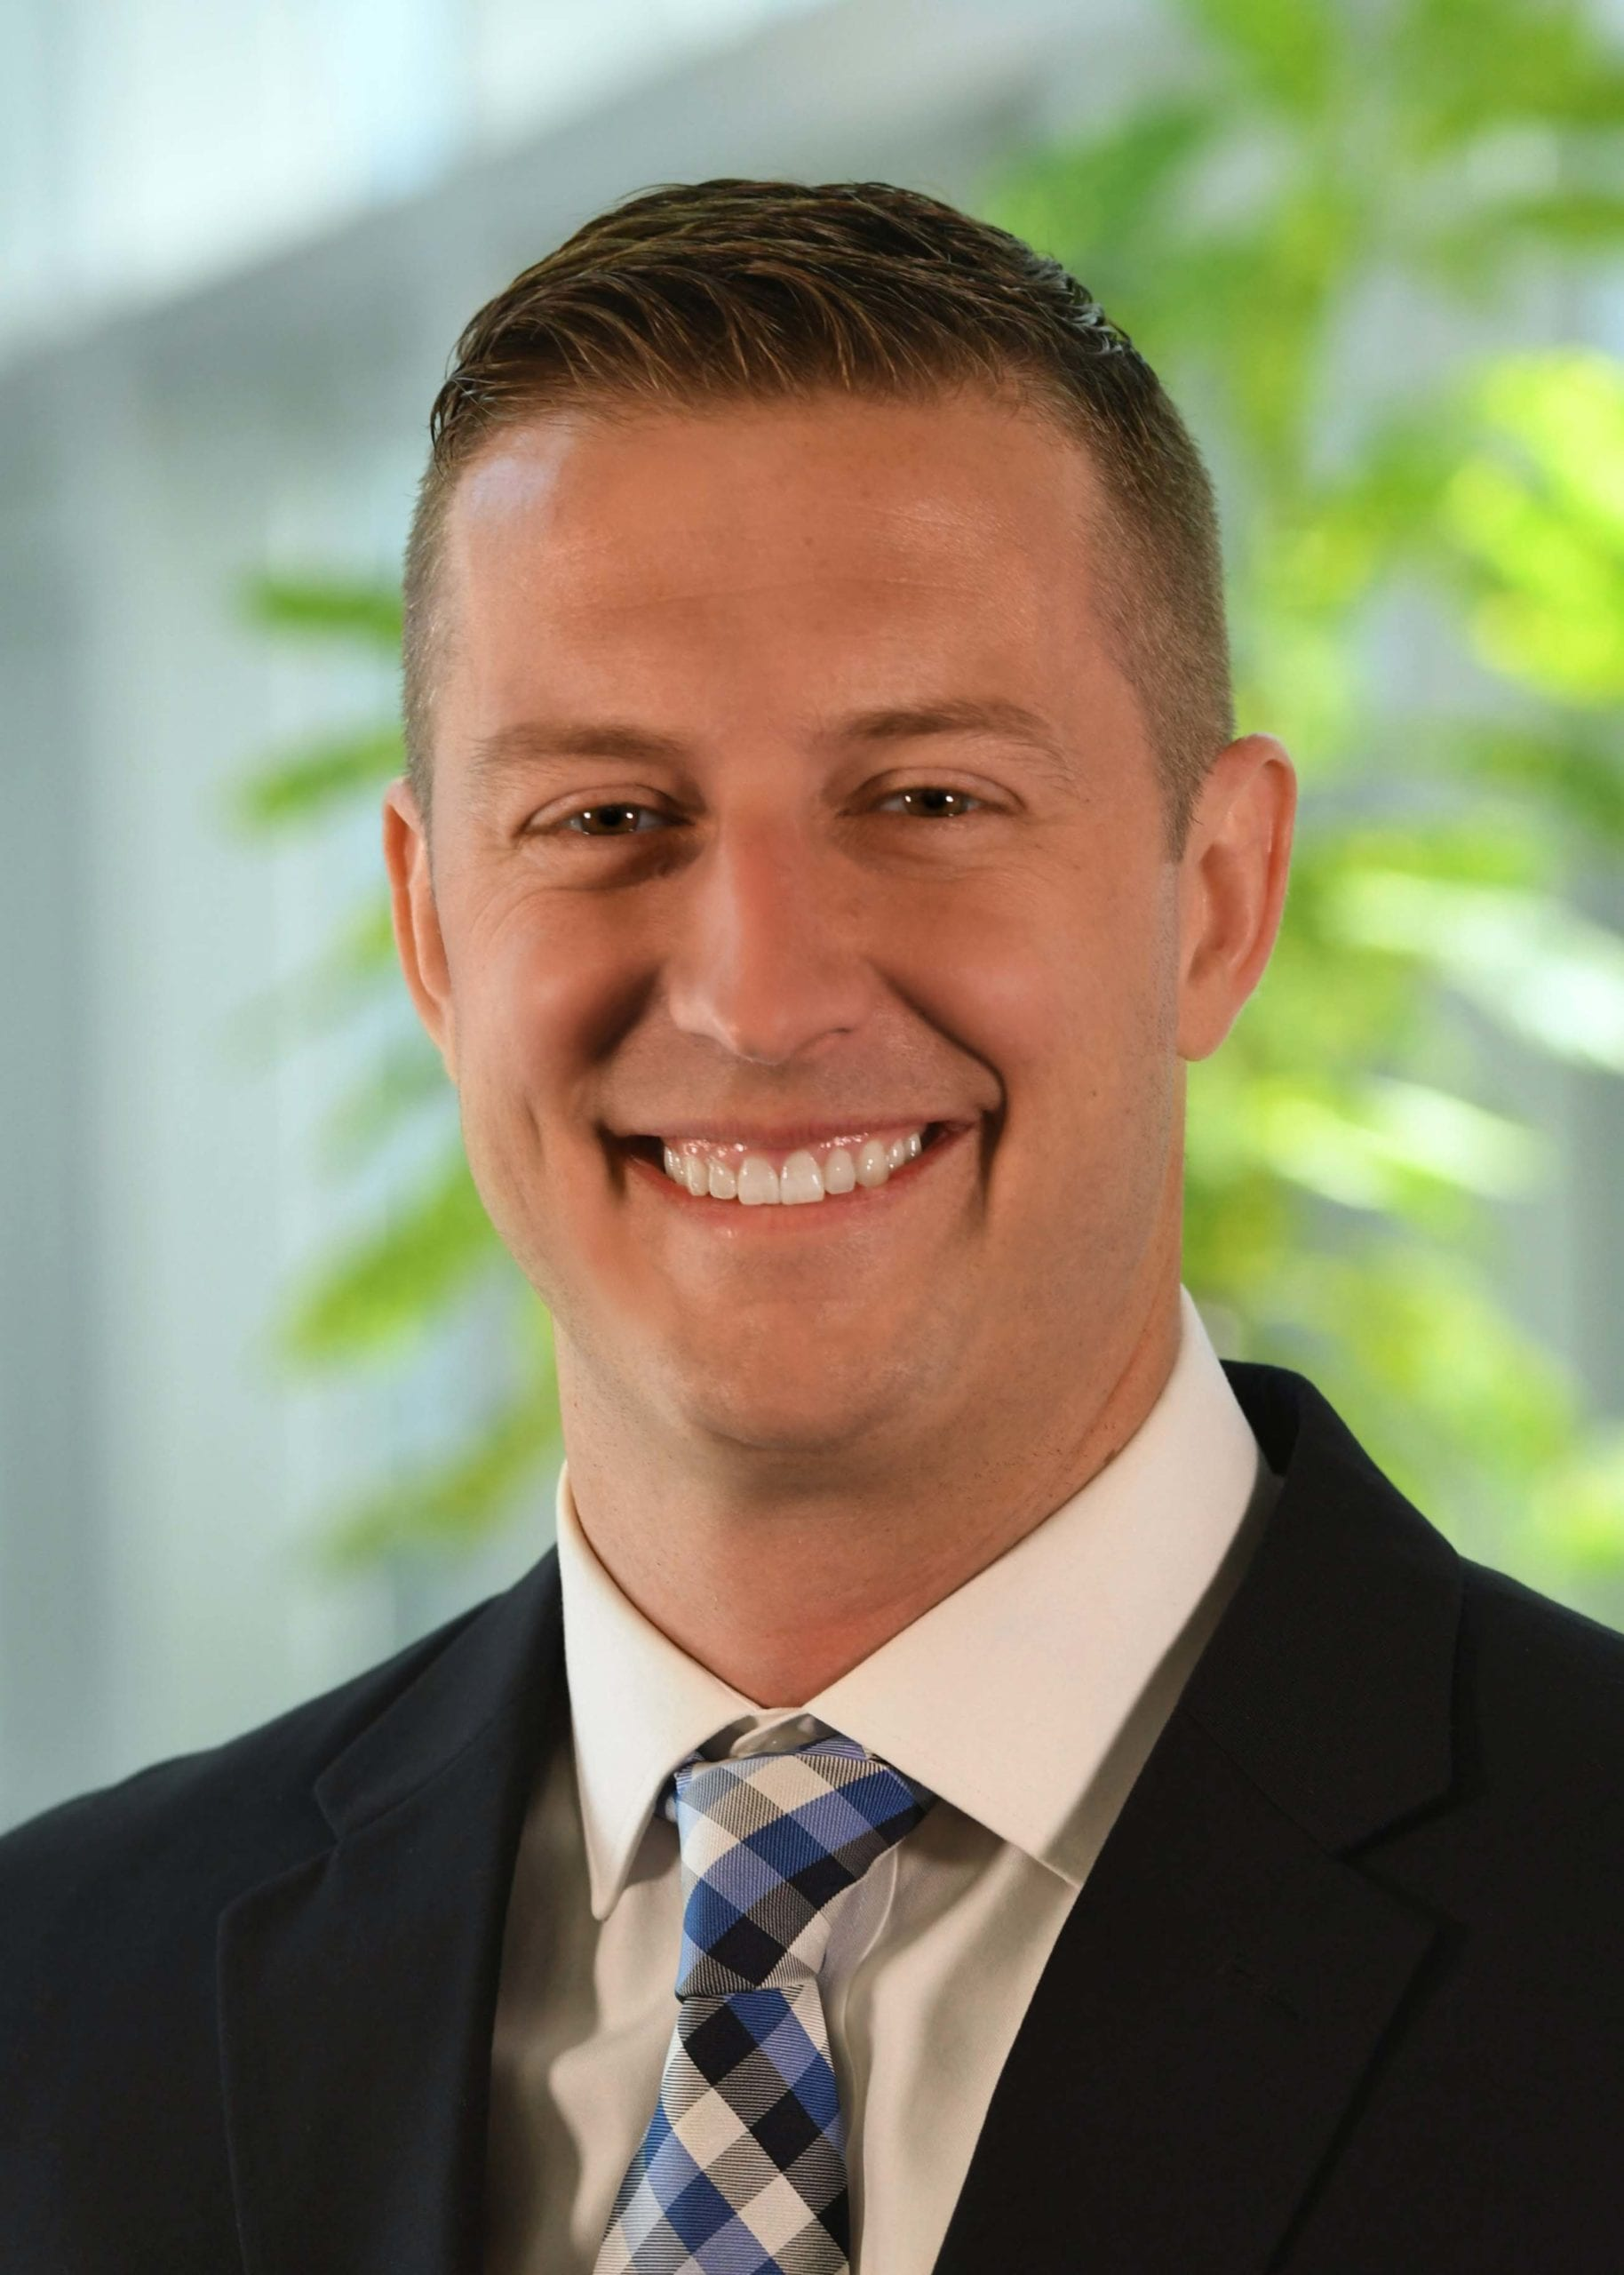 Prime's Recruiting Manager Travis Bacon, smiling while wearing a black suit with a blue & black tie.